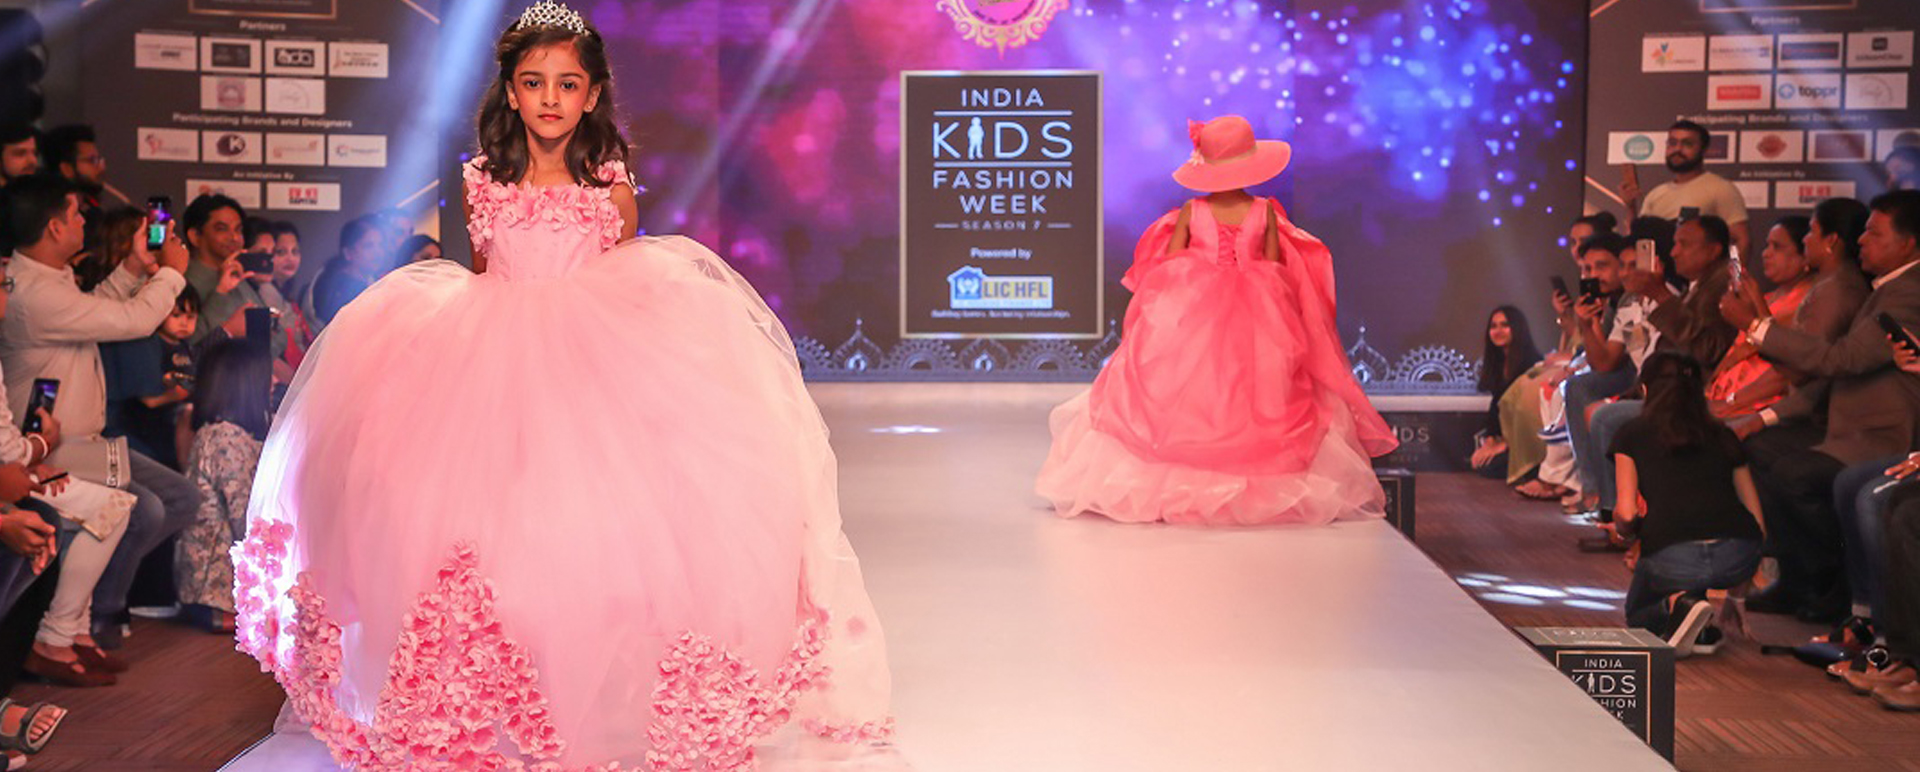 Ikfw India Kids Fashion Week